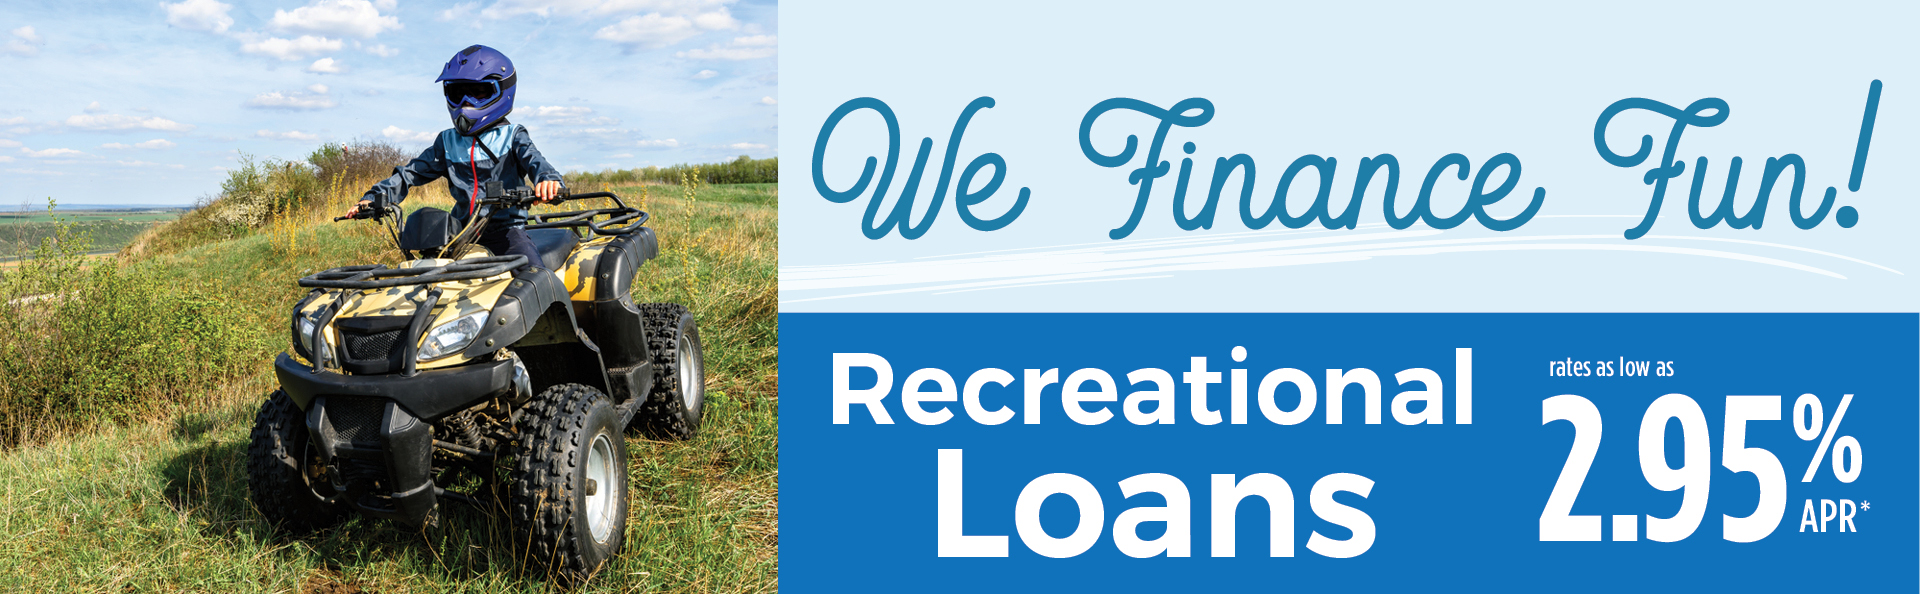 Recreation Loans Available.